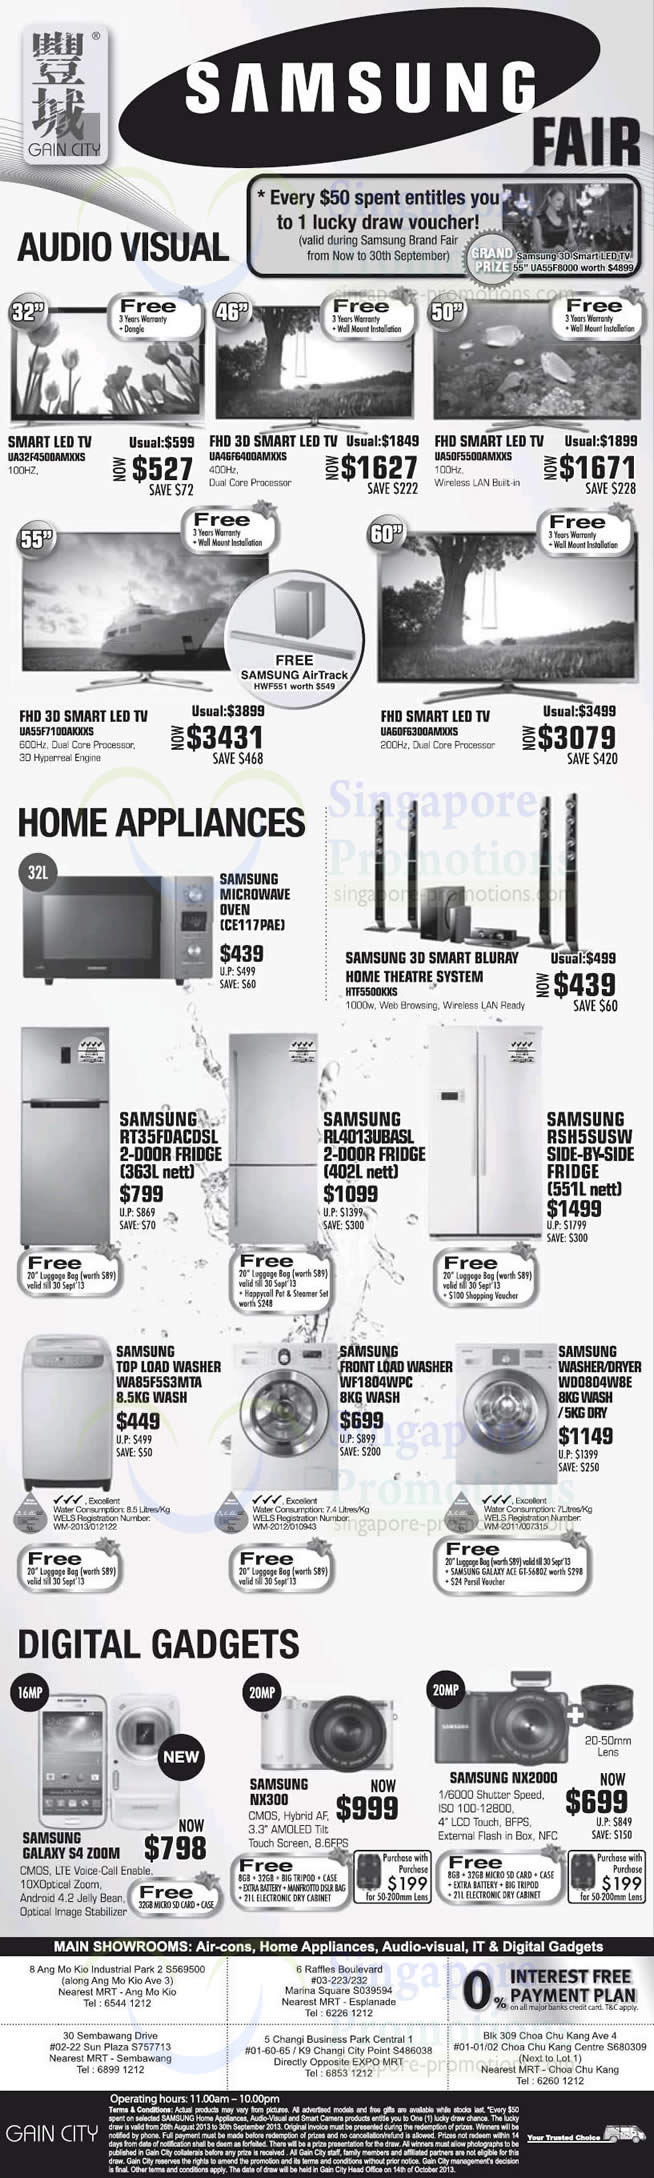 Samsung TVs, Home Theatre Systems, Washers, Fridges, Smartphones, Digital Cameras, Ovens listed are Samsung UA32F4500AMXXS TV, Samsung UA46F6400AMXXS TV, Samsung UA50F5500AMXXS TV, Samsung UA55F7100AMXXS TV, Samsung UA60F6300AMXXS TV, Samsung CE117PAE Oven, Samsung HTF5500KXS Home Theatre System, Samsung RT35FDACDSL Fridge and Samsung RL4013UBASL FridgeAlso listed are Samsung RSH5SUSW Fridge, Samsung WA85F5S3MTA Washer, Samsung WF1804WPC Washer, Samsung WD0804W8E Washer, Samsung Galaxy S4 Zoom, Samsung NX300 Digital Camera and Samsung NX2000 Digital Camera